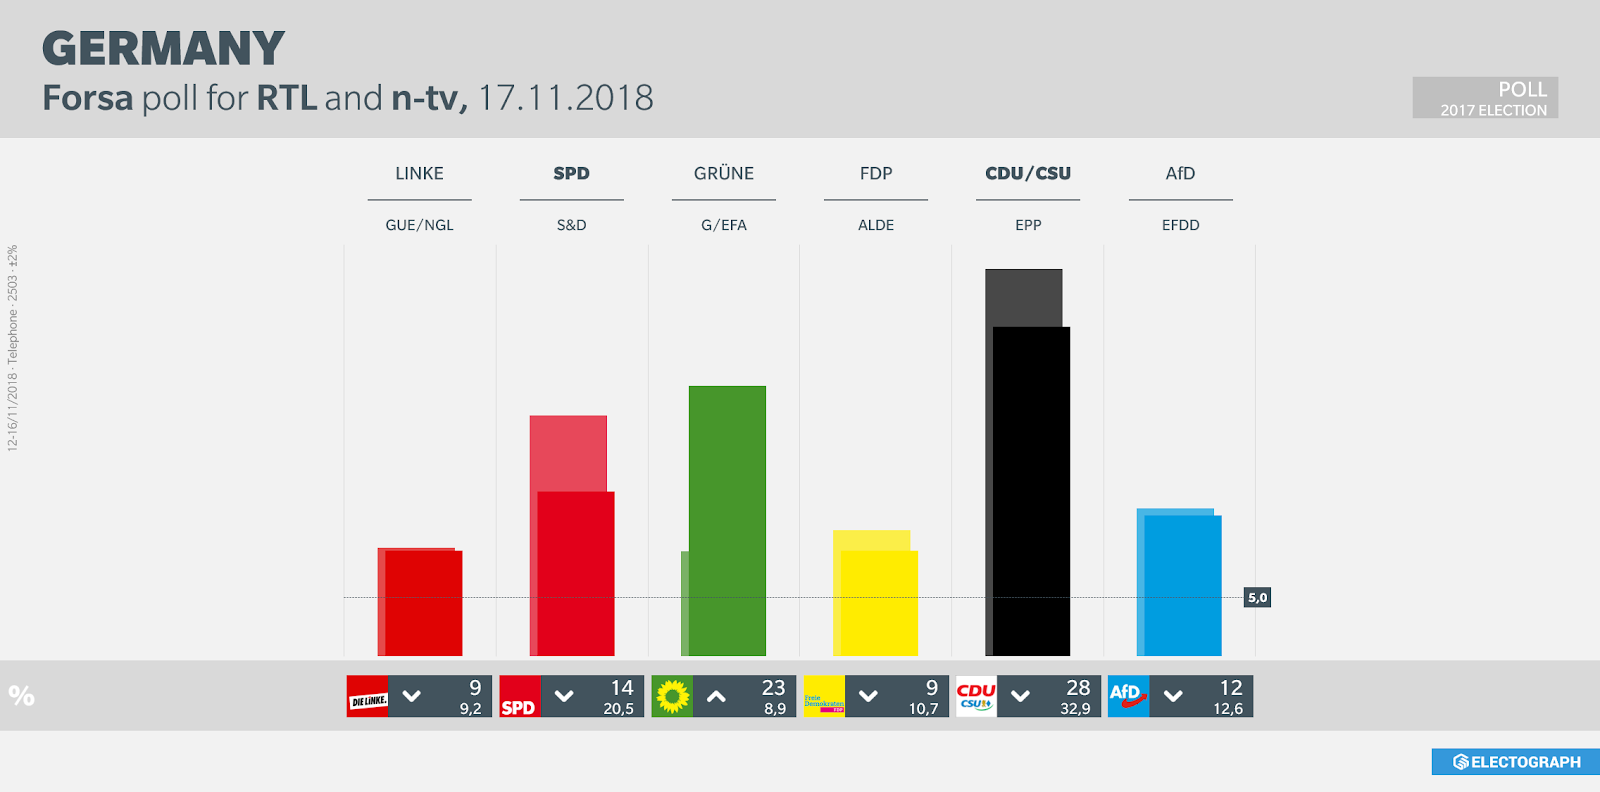 GERMANY: Forsa poll chart for RTL and n-tv, 17 November 2018